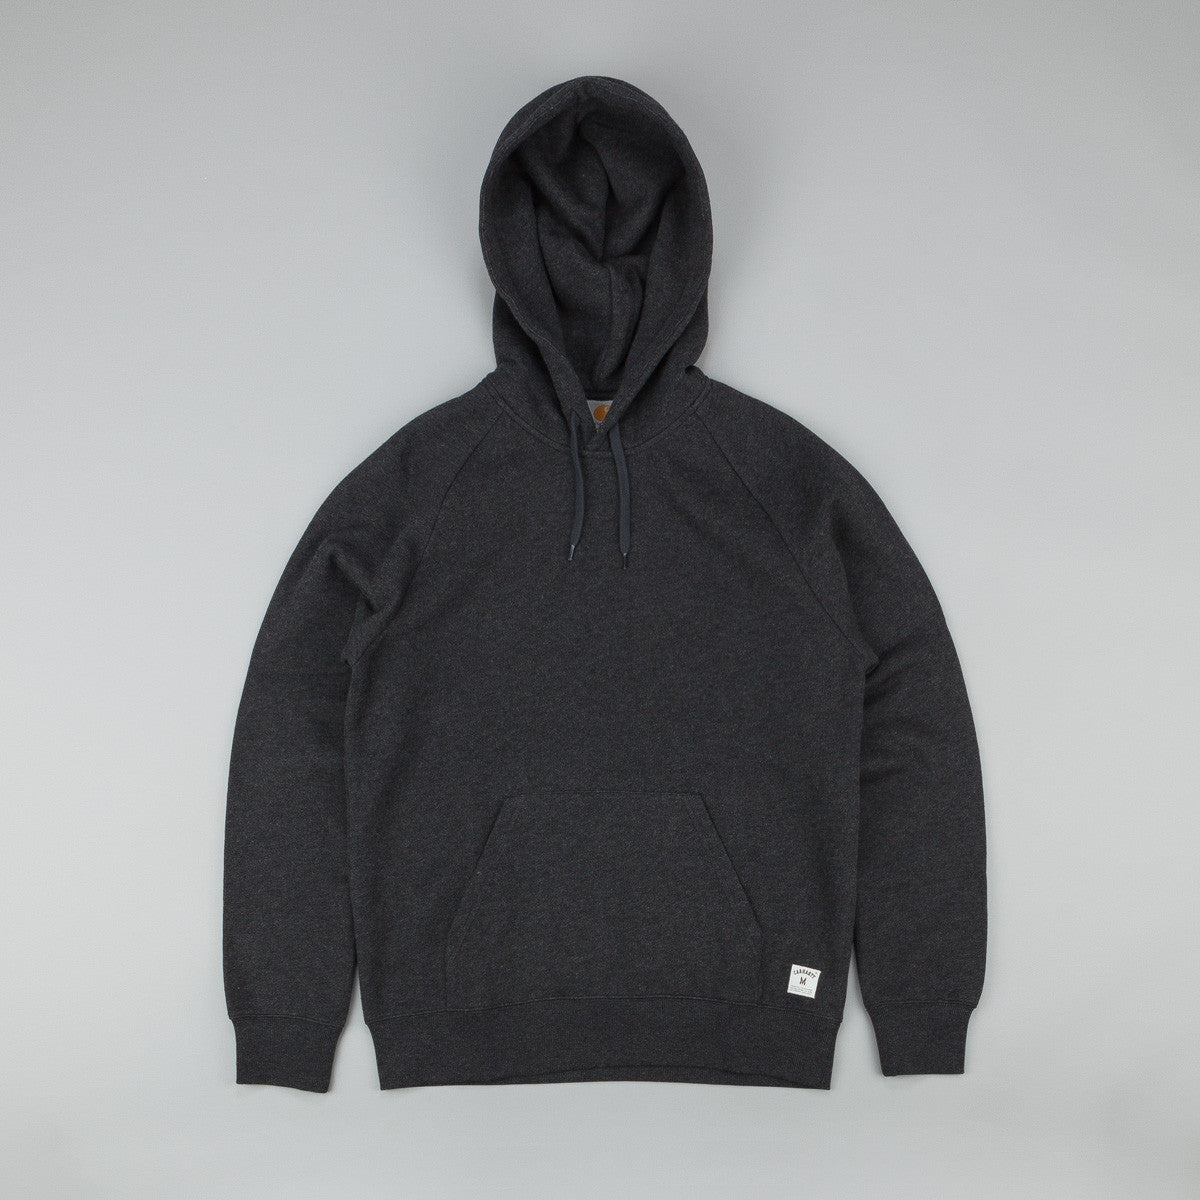 Carhartt Hooded Holbrook Sweatshirt